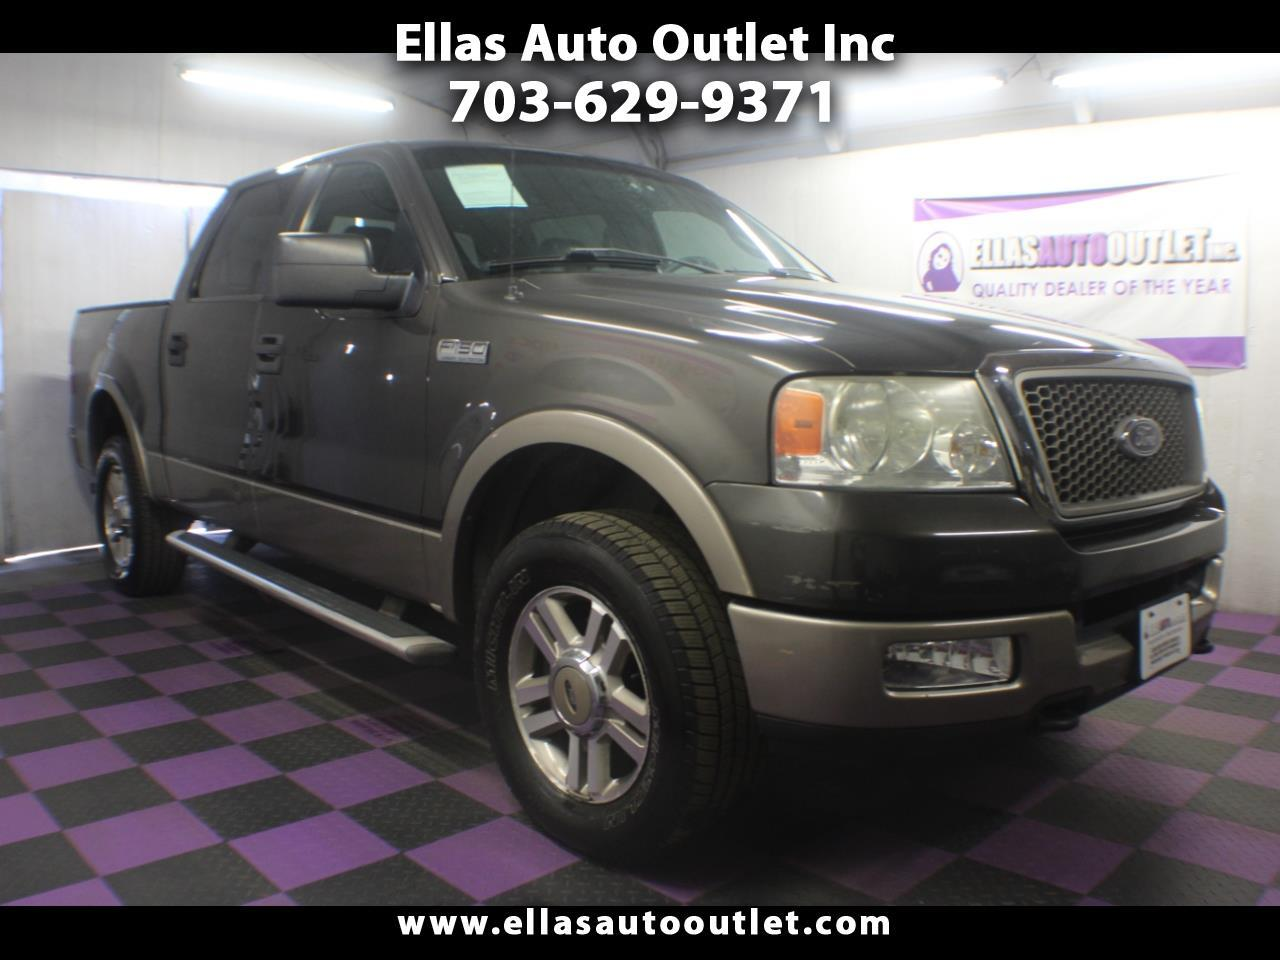 2005 Ford F-150 SuperCrew 139